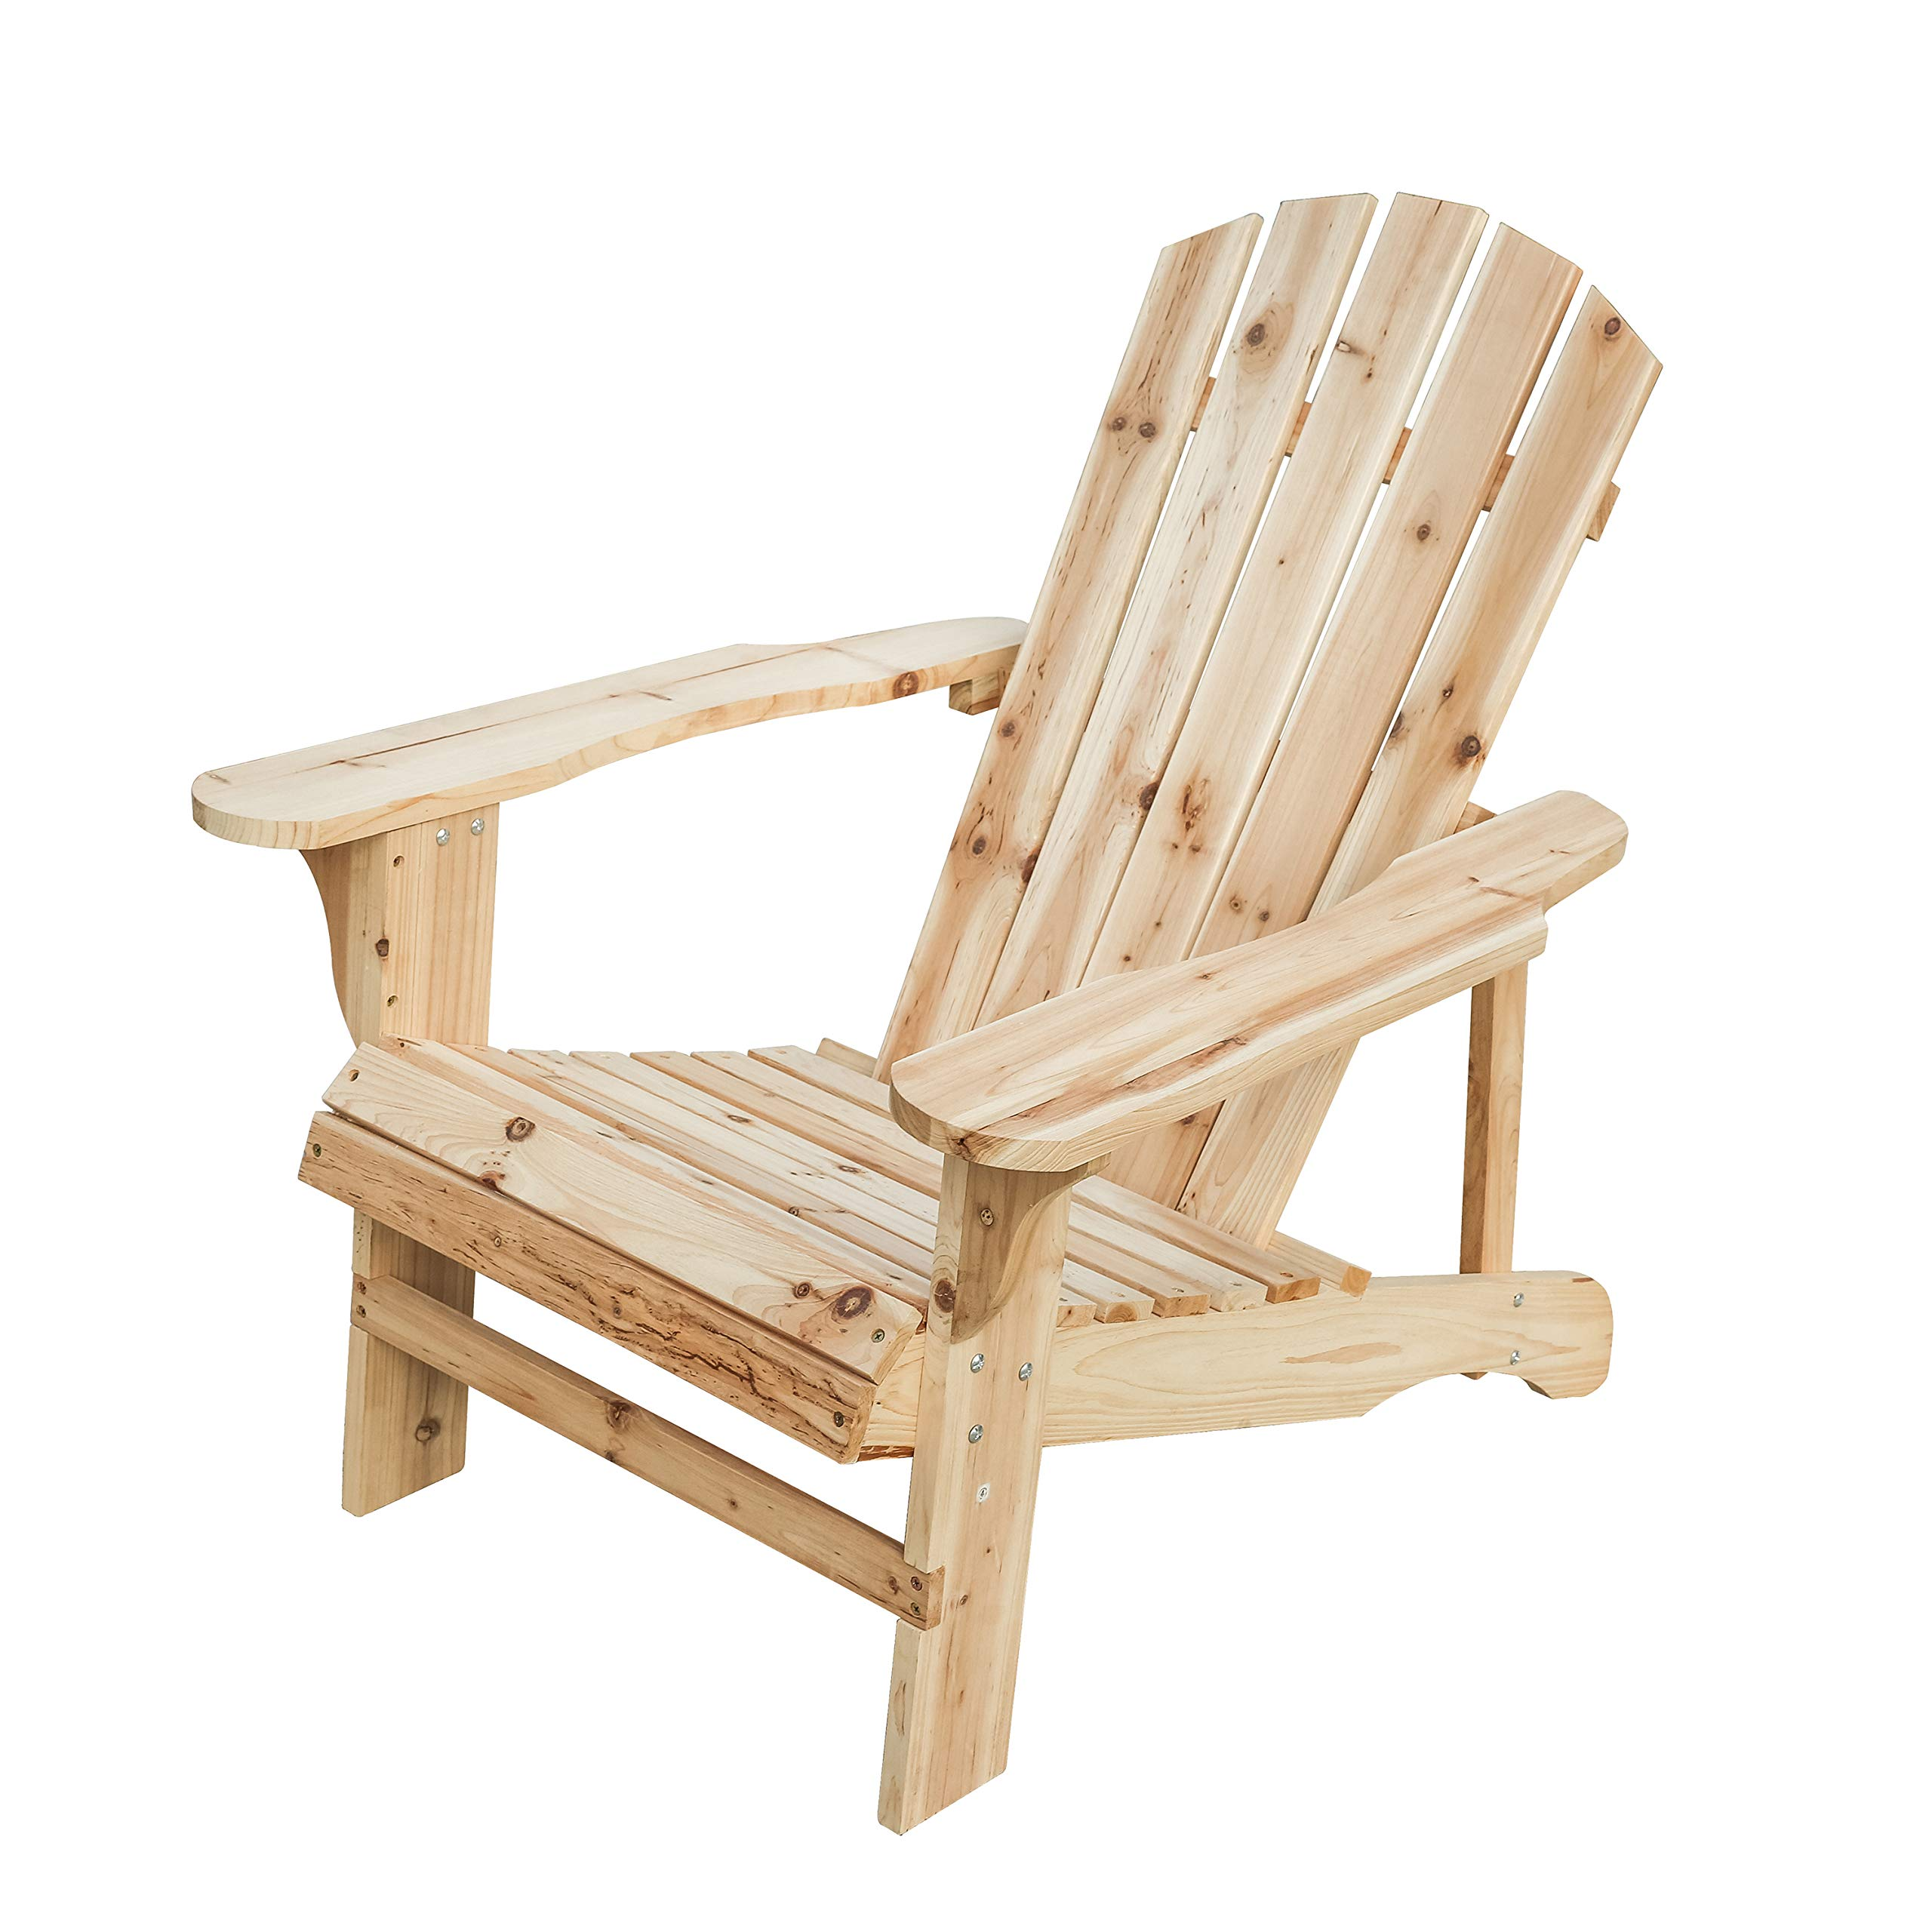 Patio Festival Wood Adirondack Lounger Chair,Outdoor Fir Unpainted Wooden Chairs,Accent Furniture for Yard,Patio,Garden,Lawn w/Natural Finish (Adirondack Chair) by Patio Festival ®